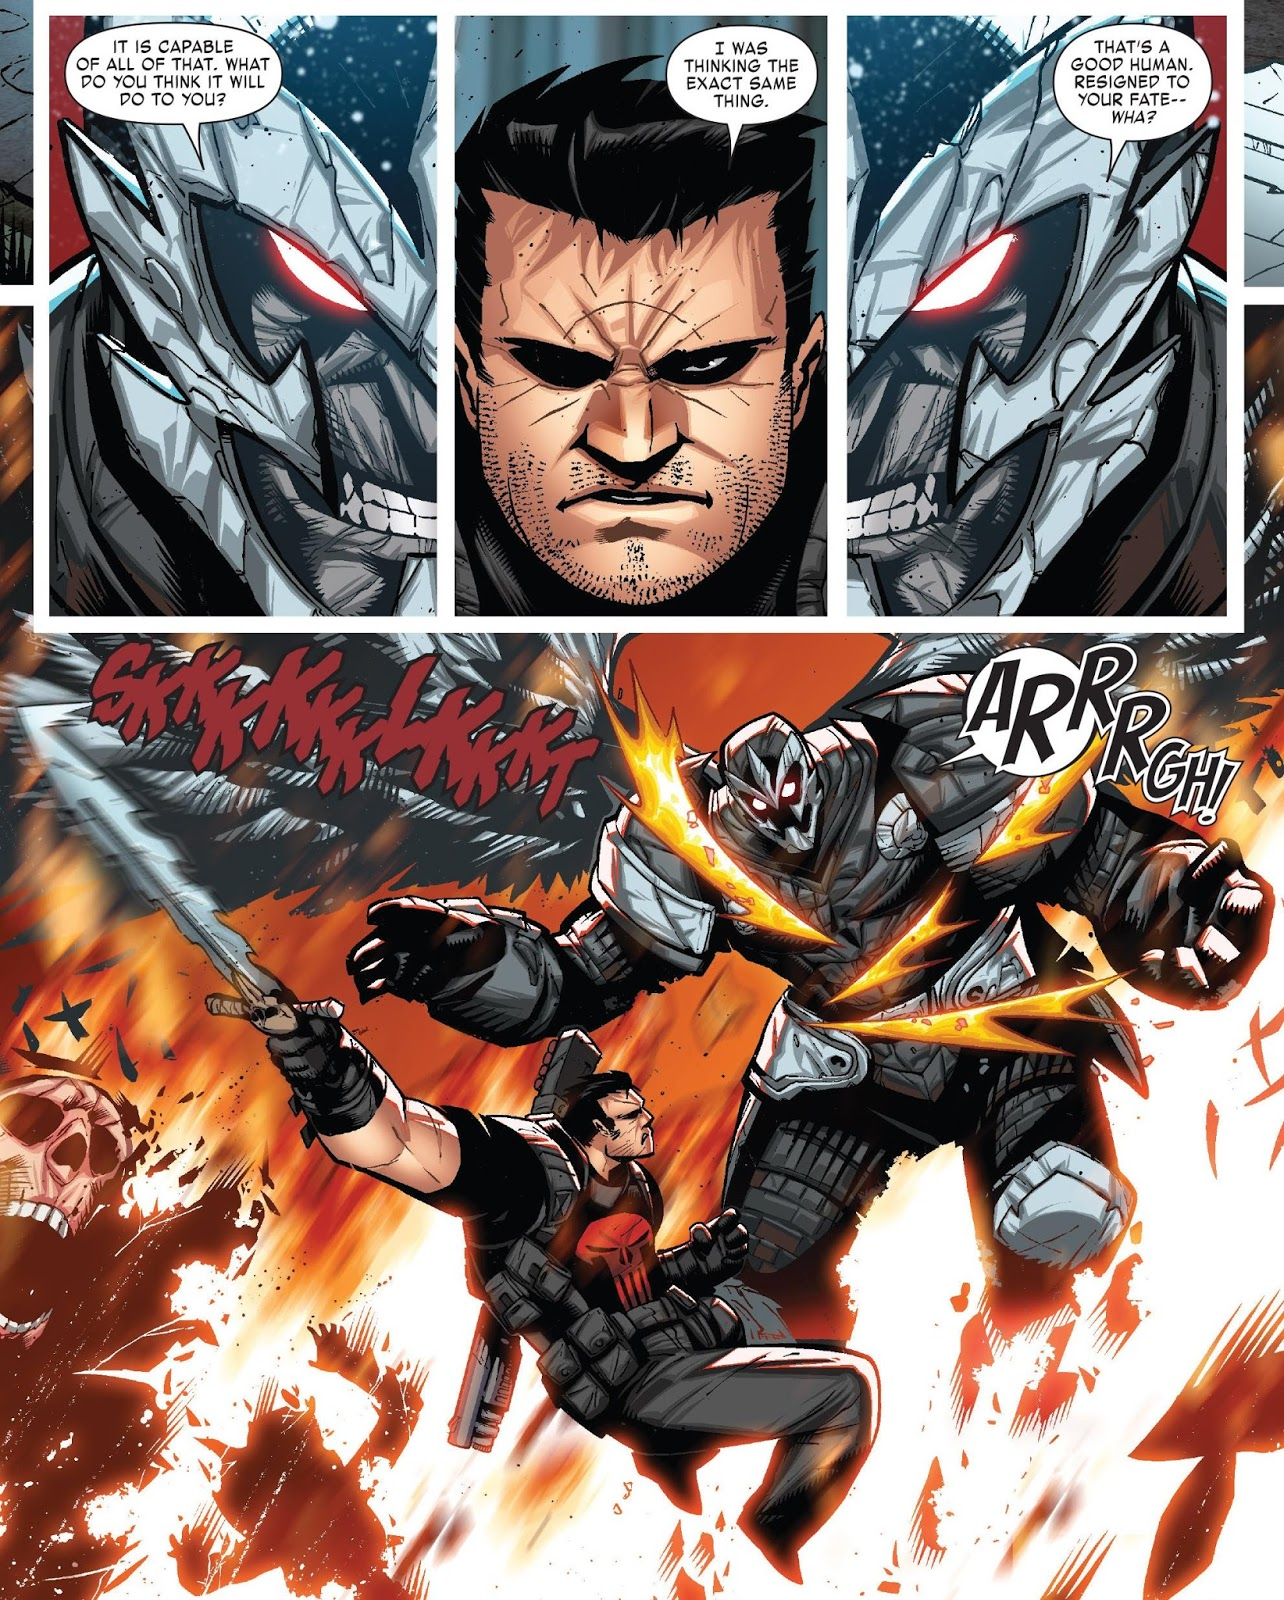 Lucifer Marvel: Punisher Central: PC POST #252: [UPDATED] -ARTICLE